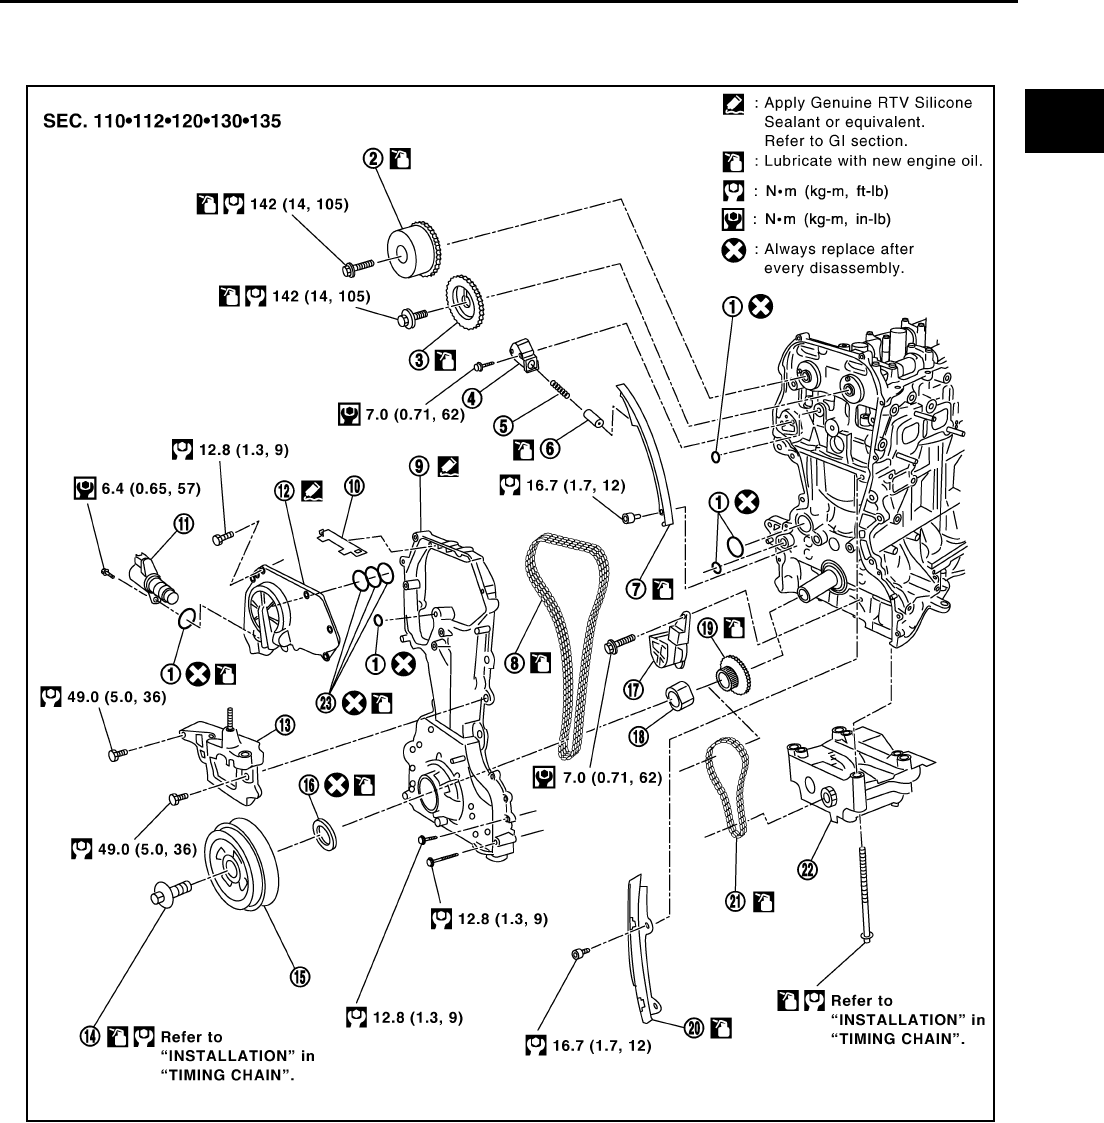 Nissan x trail workshop manual pdf